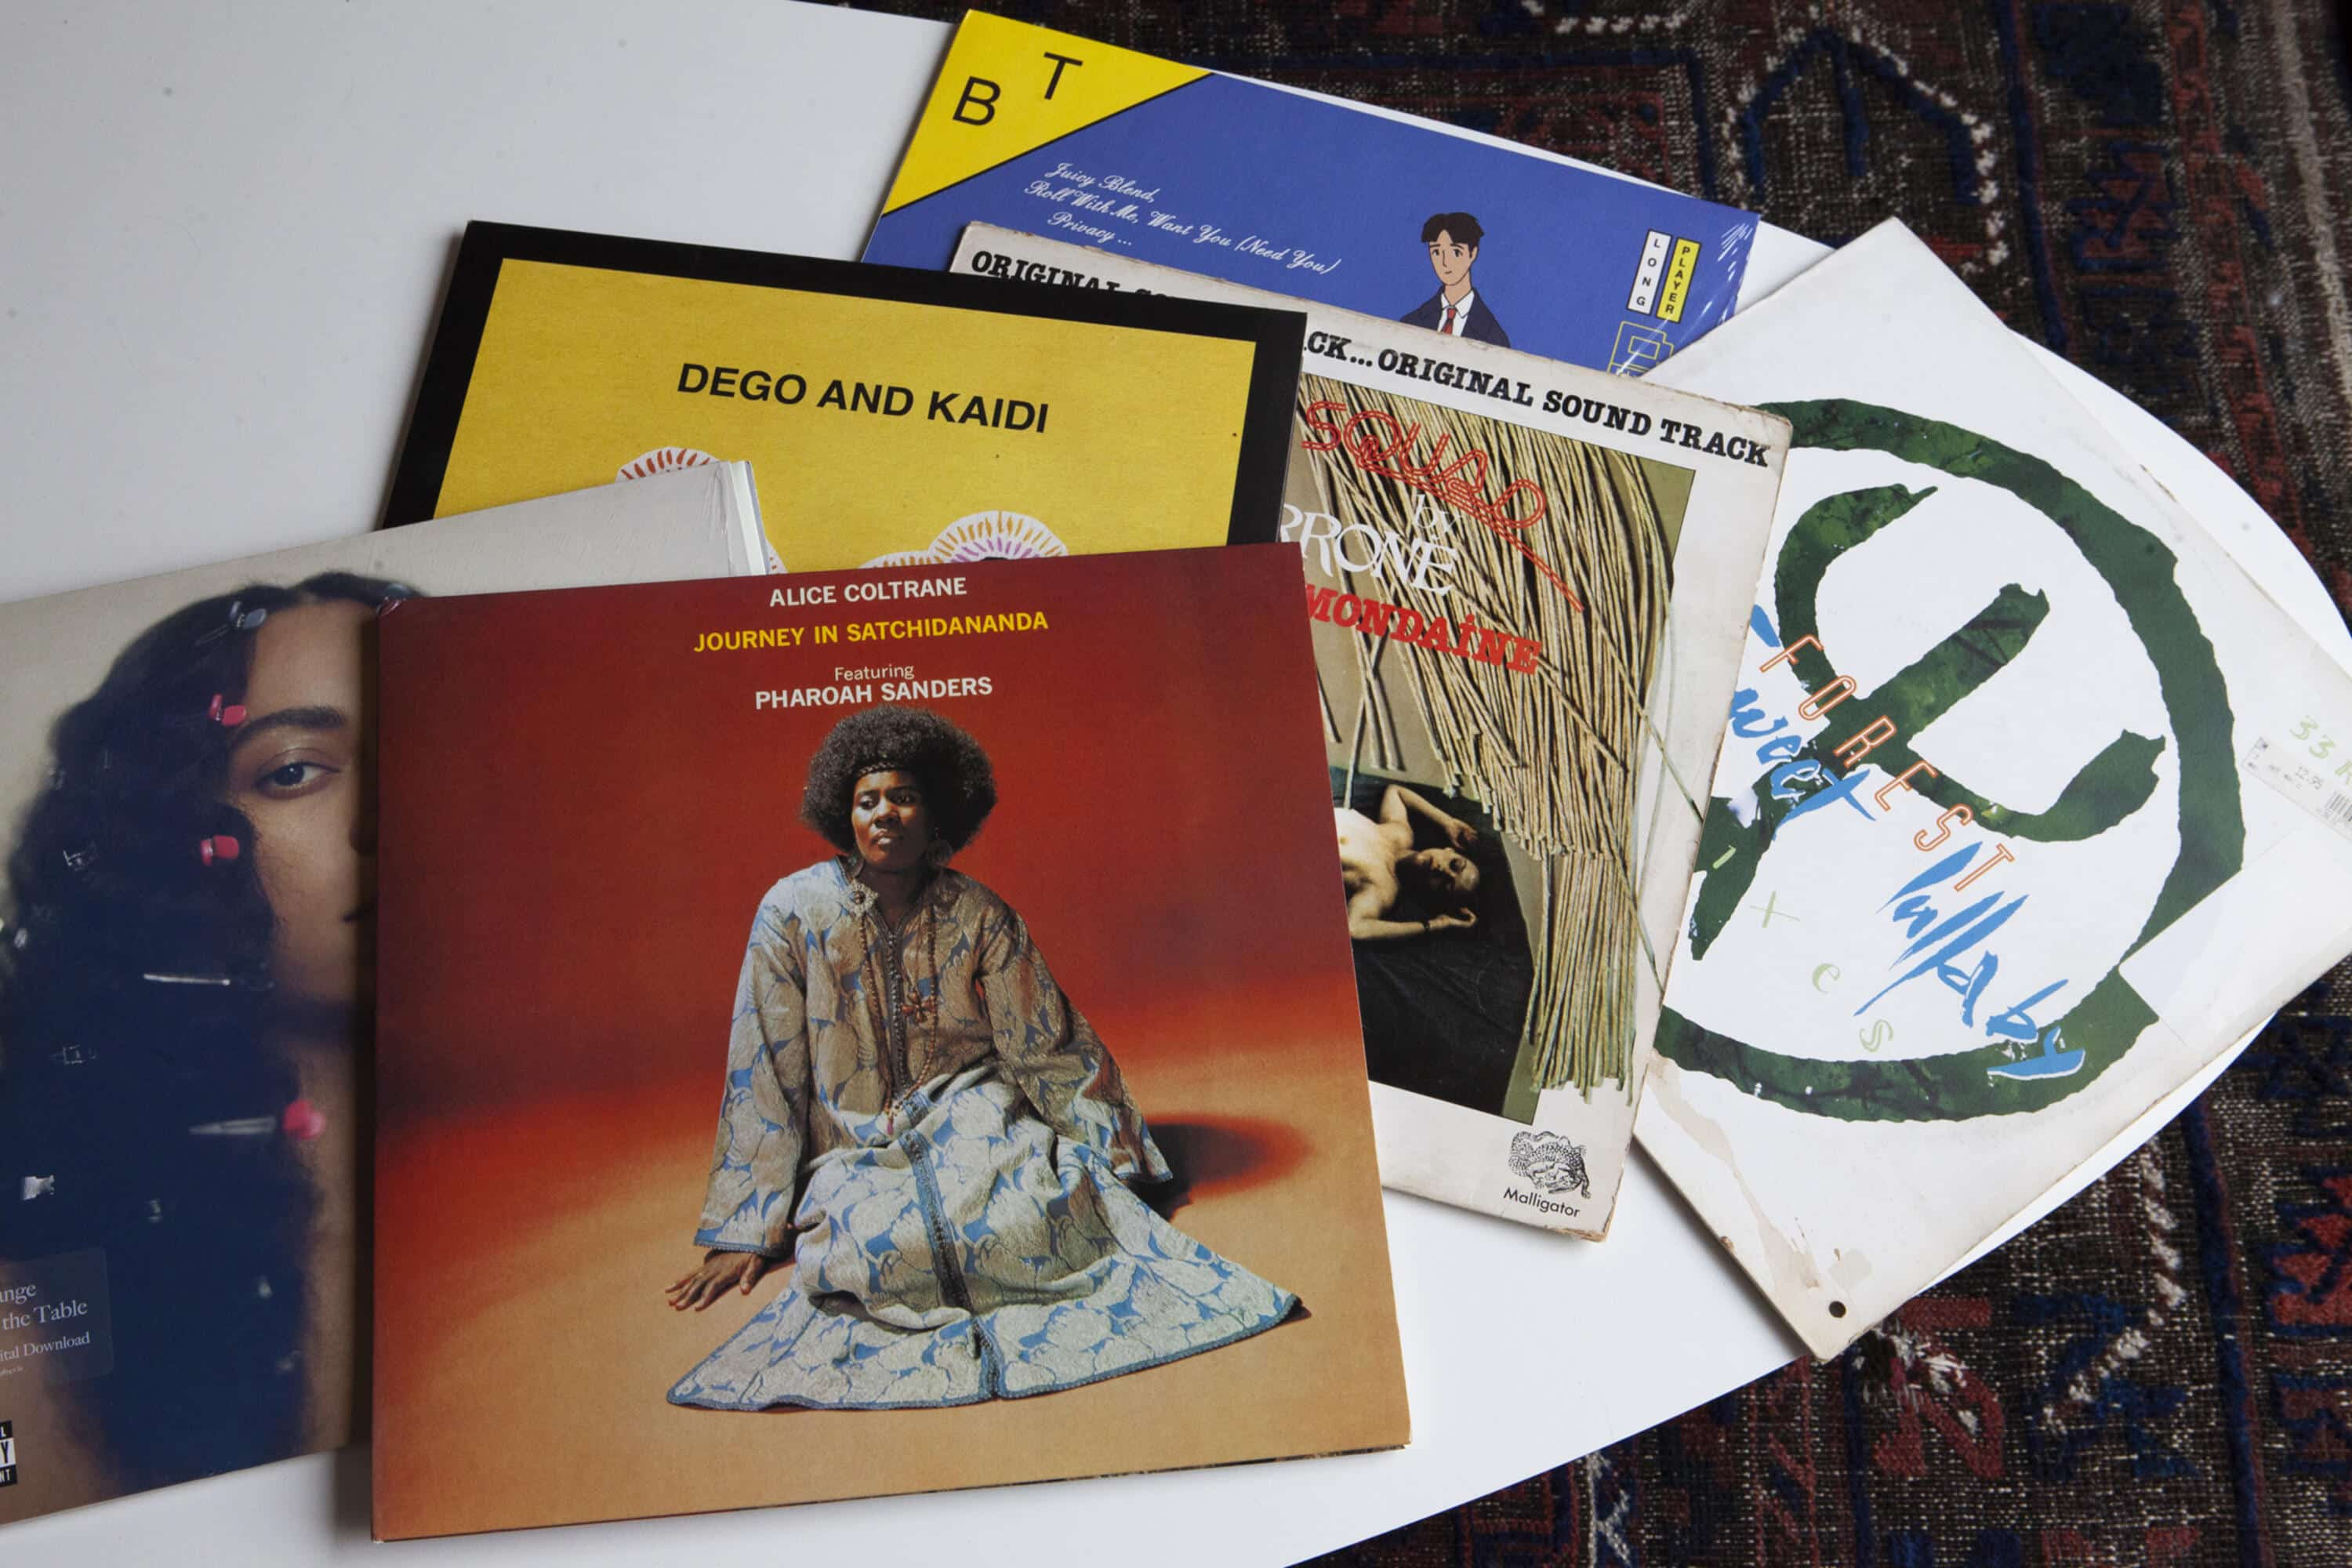 A selection of Valerie's records.